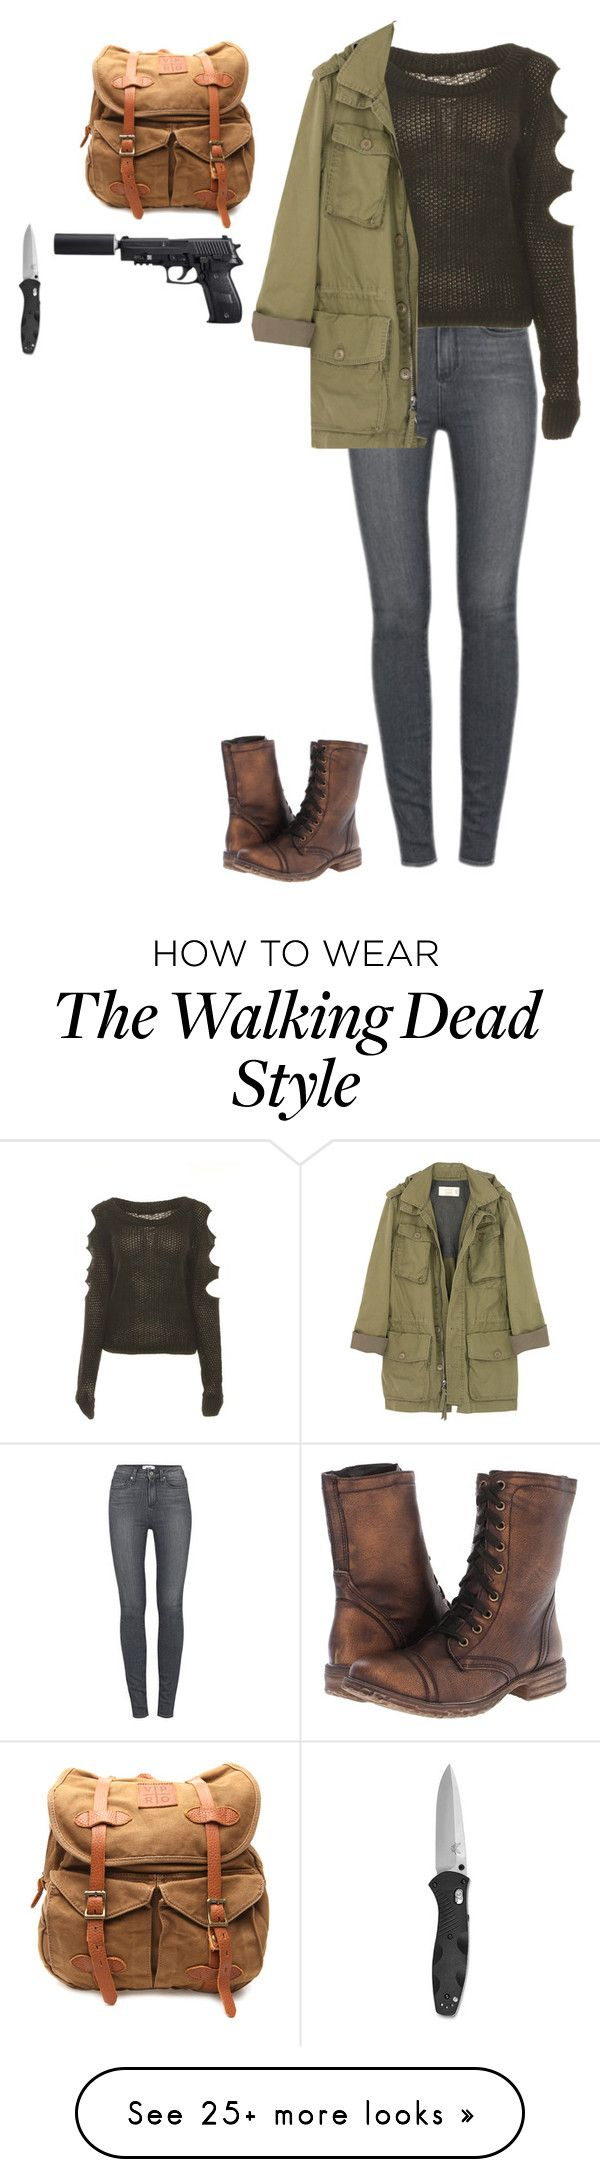 """""""the walking dead- inspired Halloween costume"""" by weareallmadhere-96 on Polyvore featuring Paige Denim, J.Crew, Volatile and VIPARO http://bestonlinedealsnow.myshopify.com/collections/the-walking-dead"""